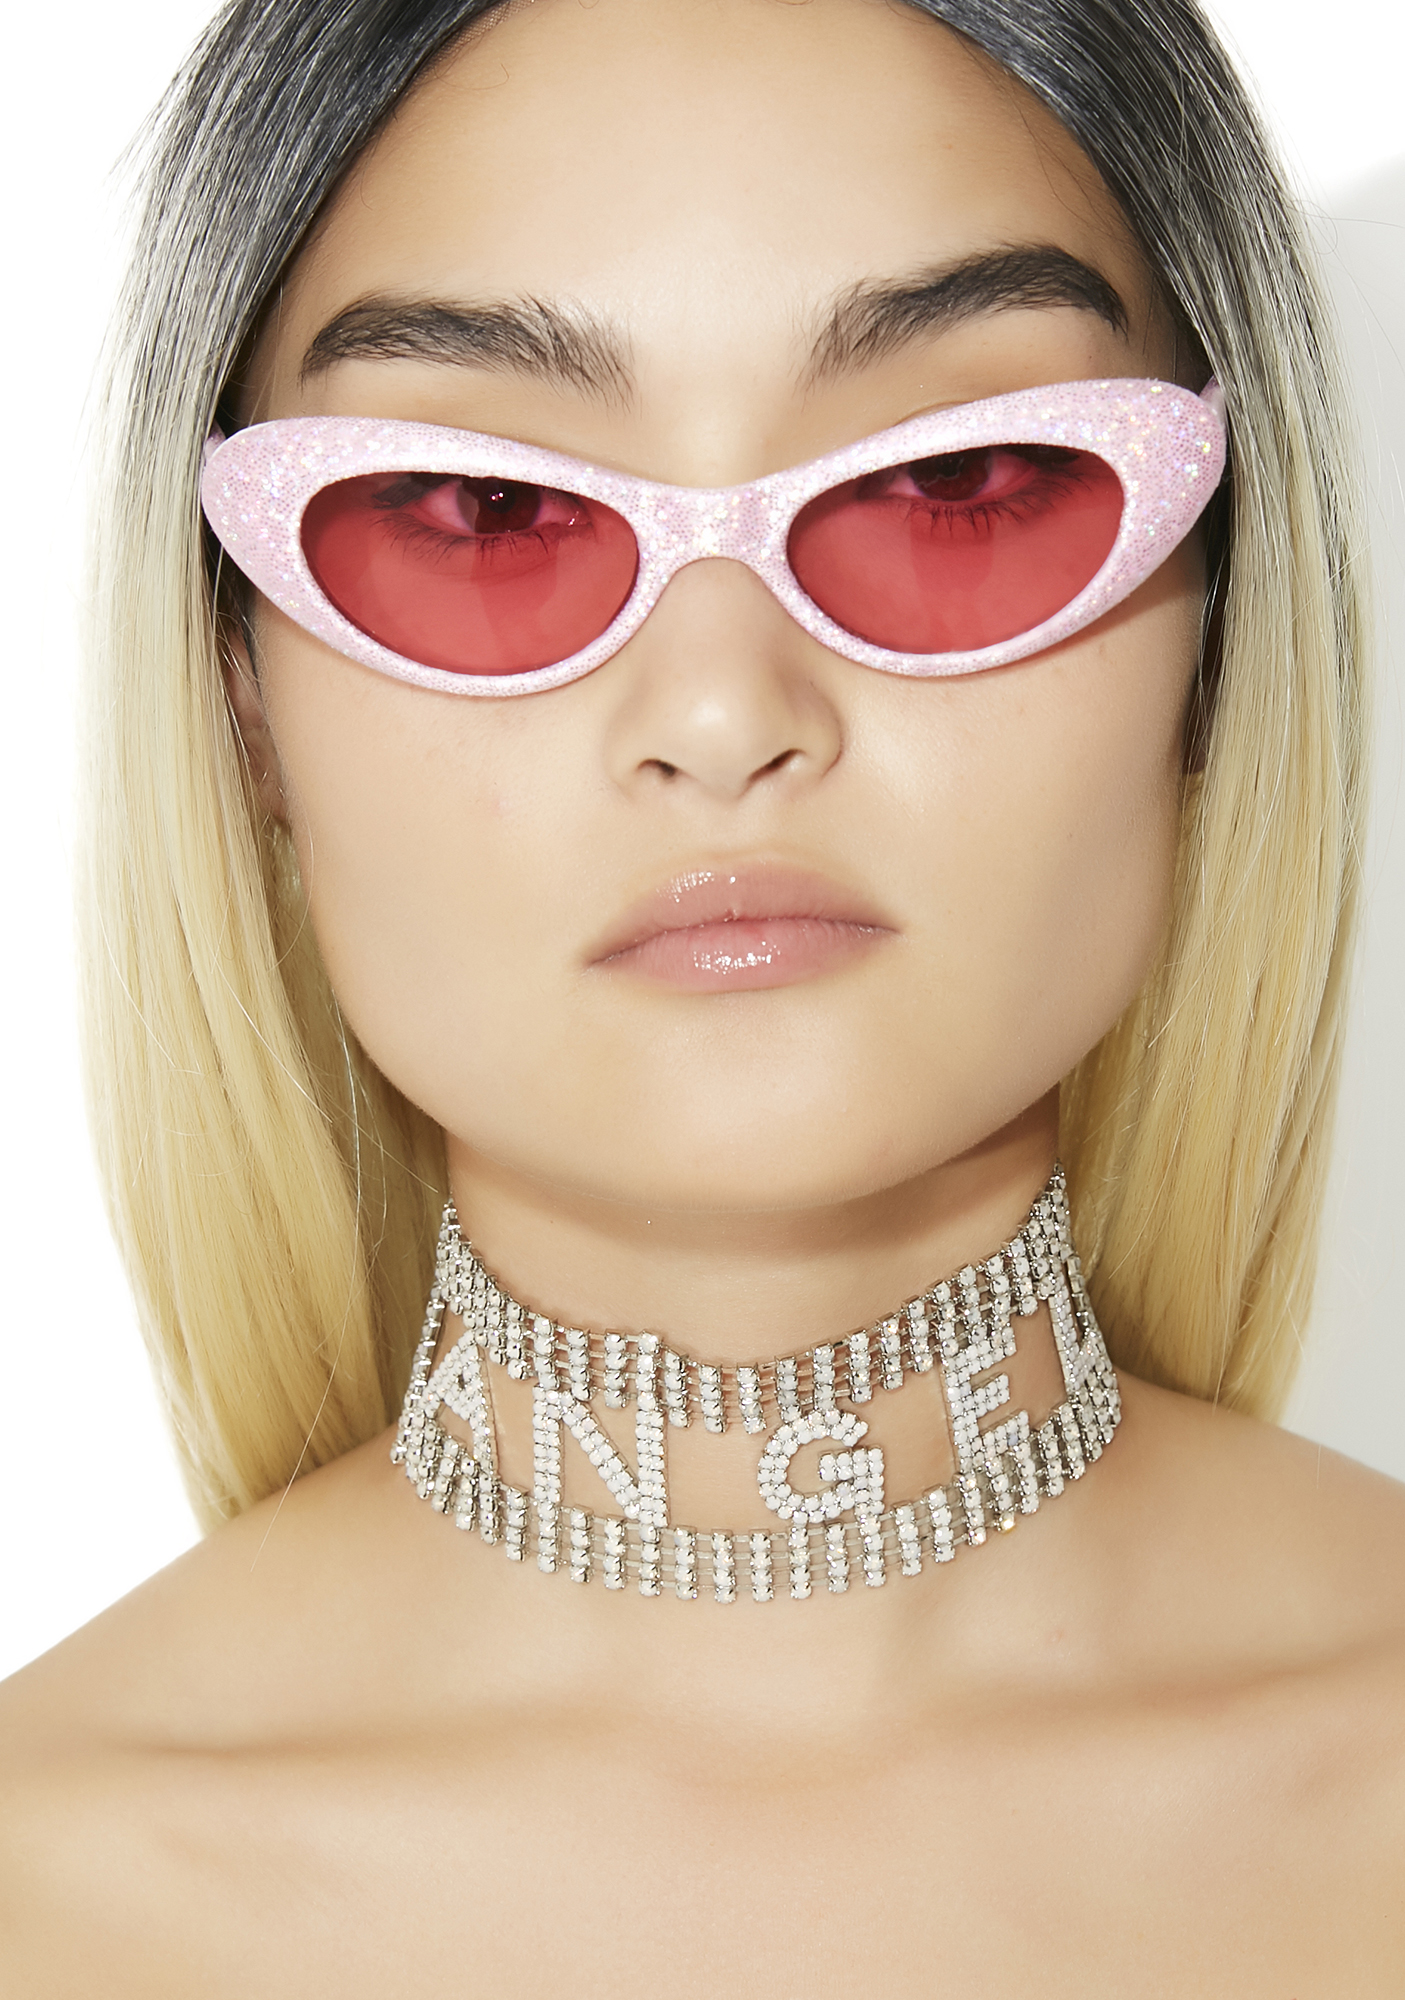 Rad and Refined Blissful Teen Spirit Sunglasses